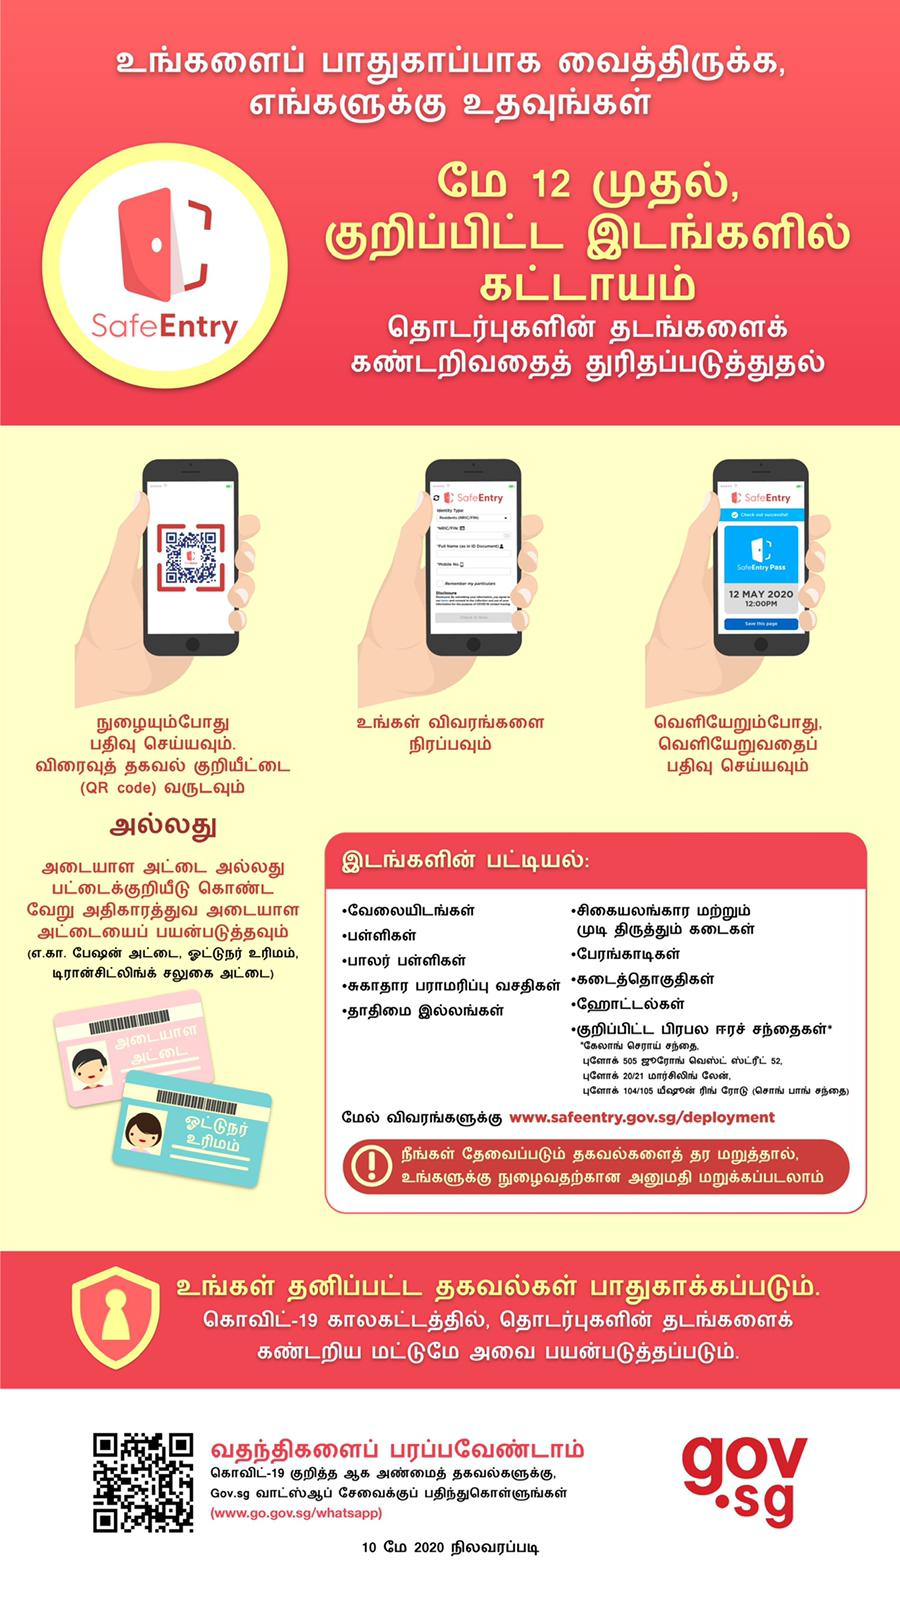 SafeEntry Digital Check-in System - Tamil